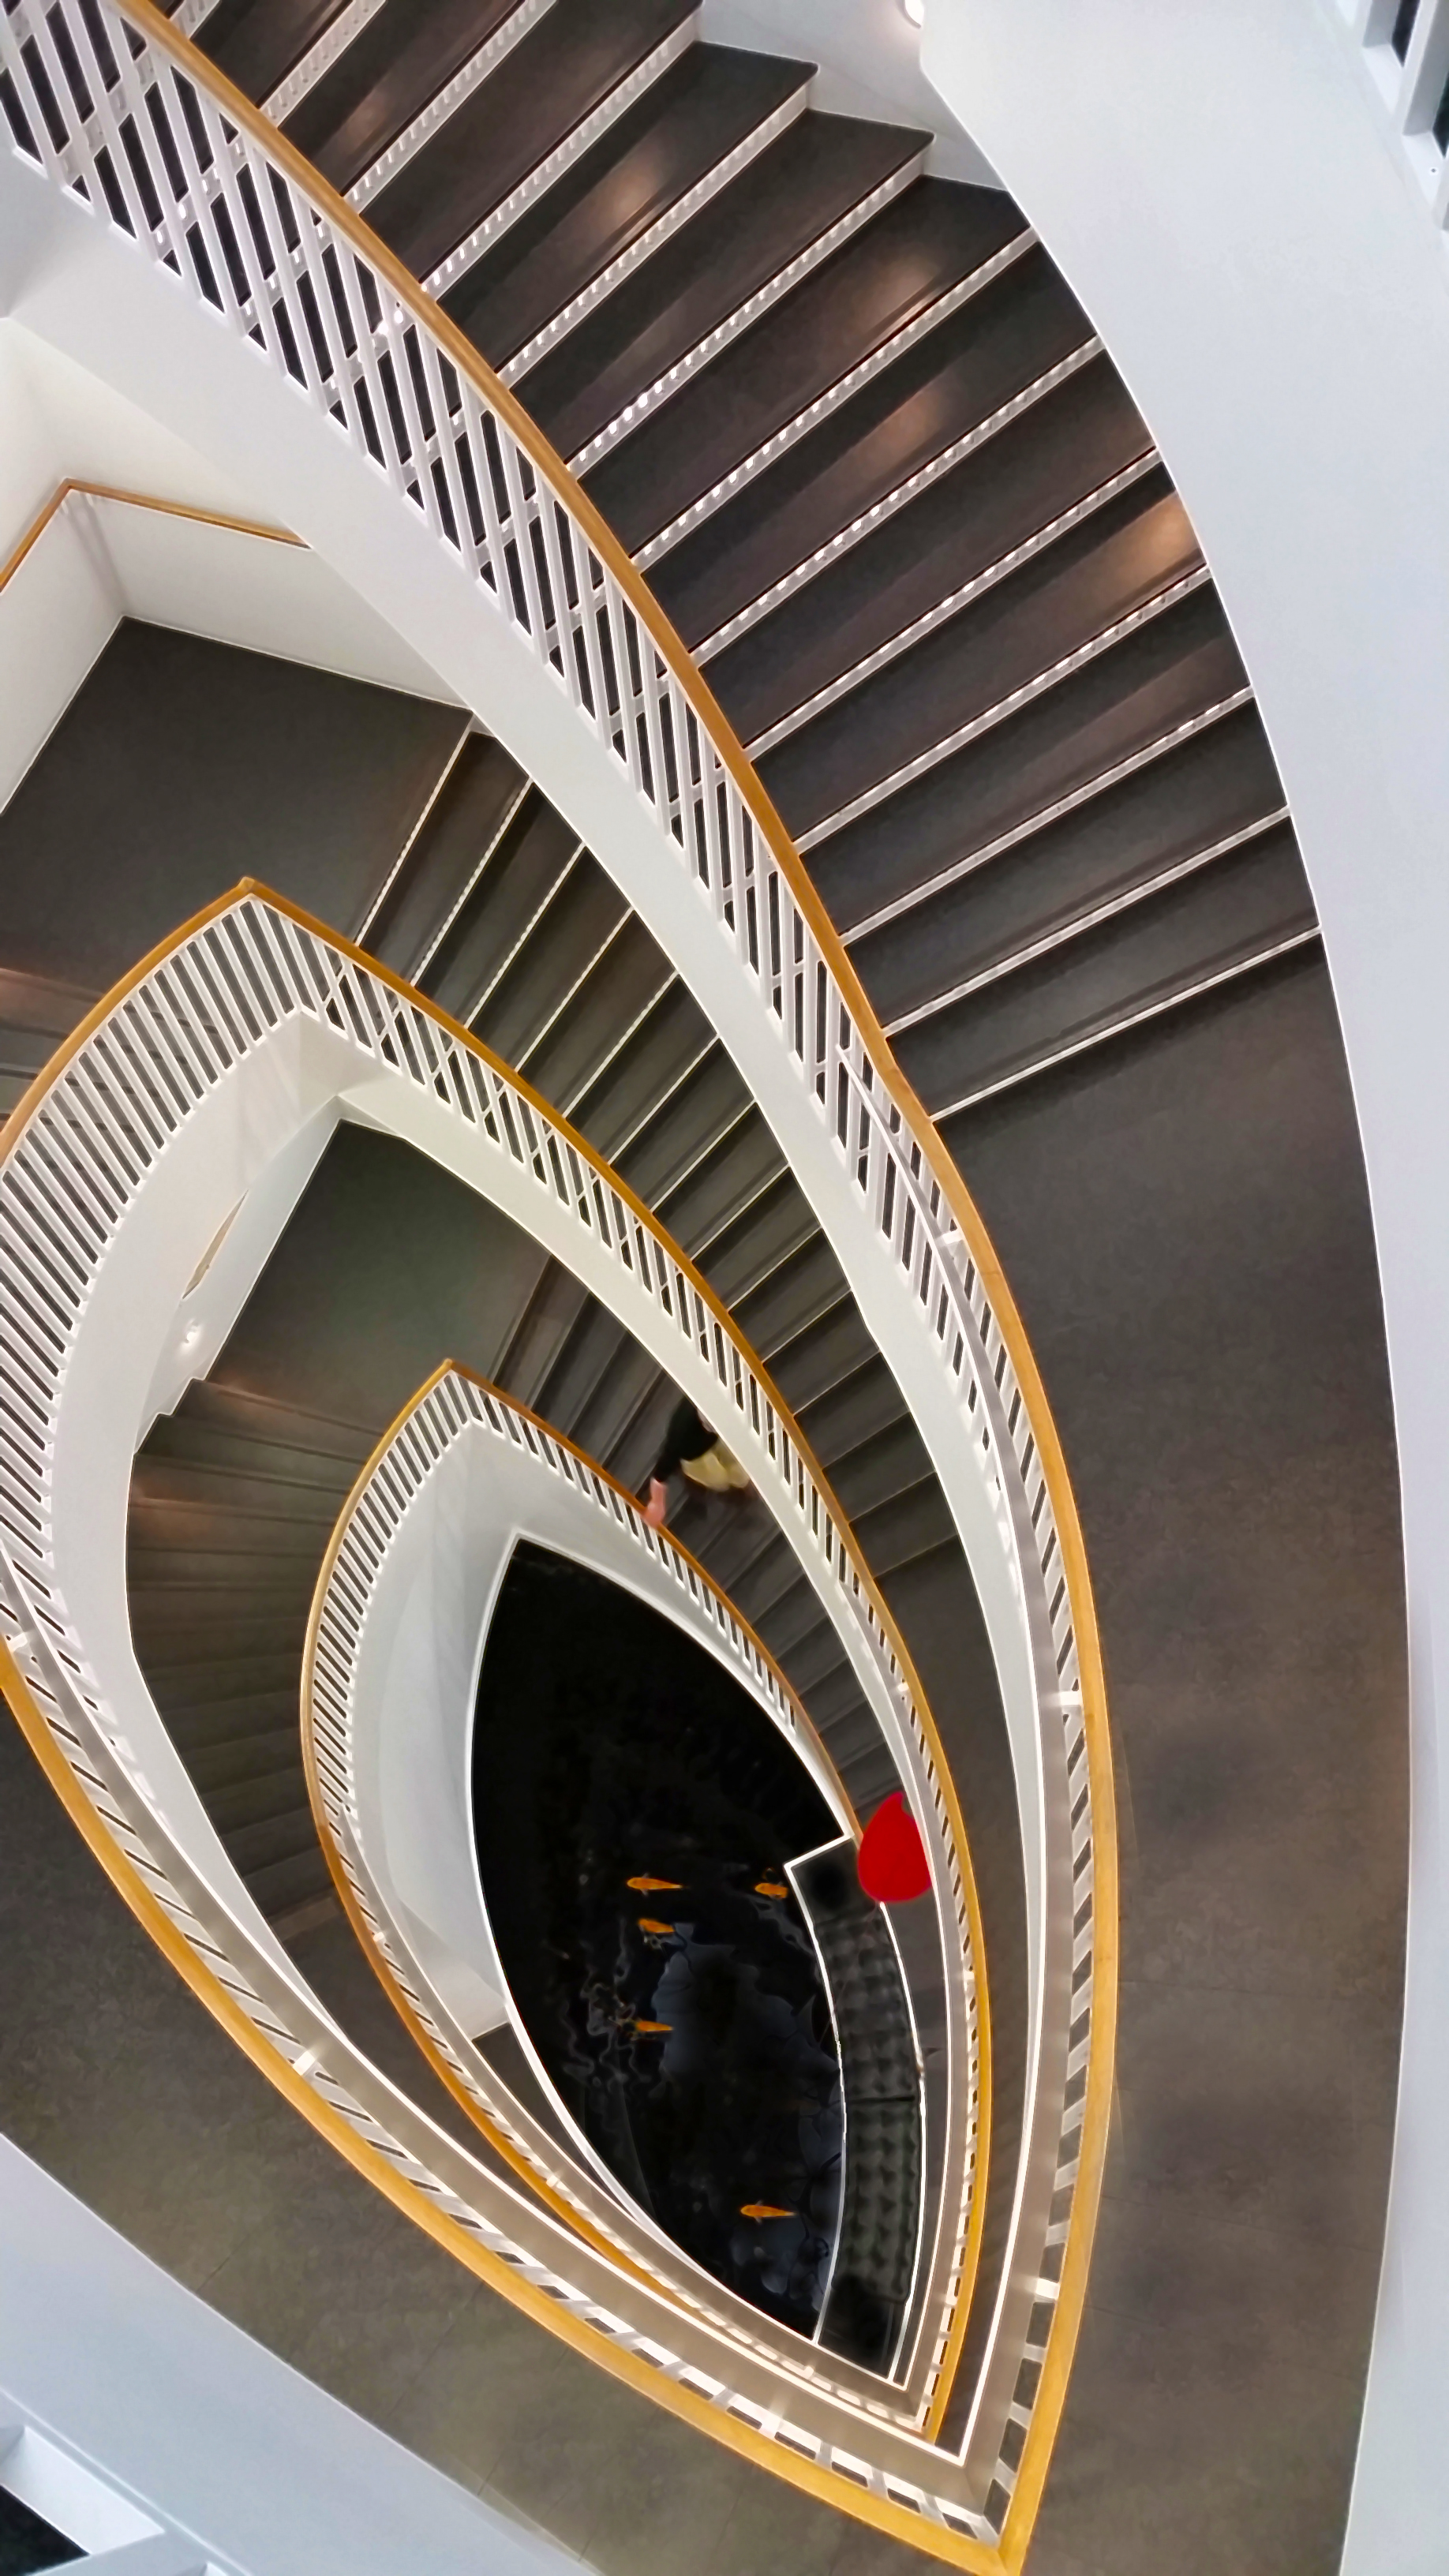 Spiral Staircase At The MCA, Chicago. Shot With My Samsung Galaxy S5.